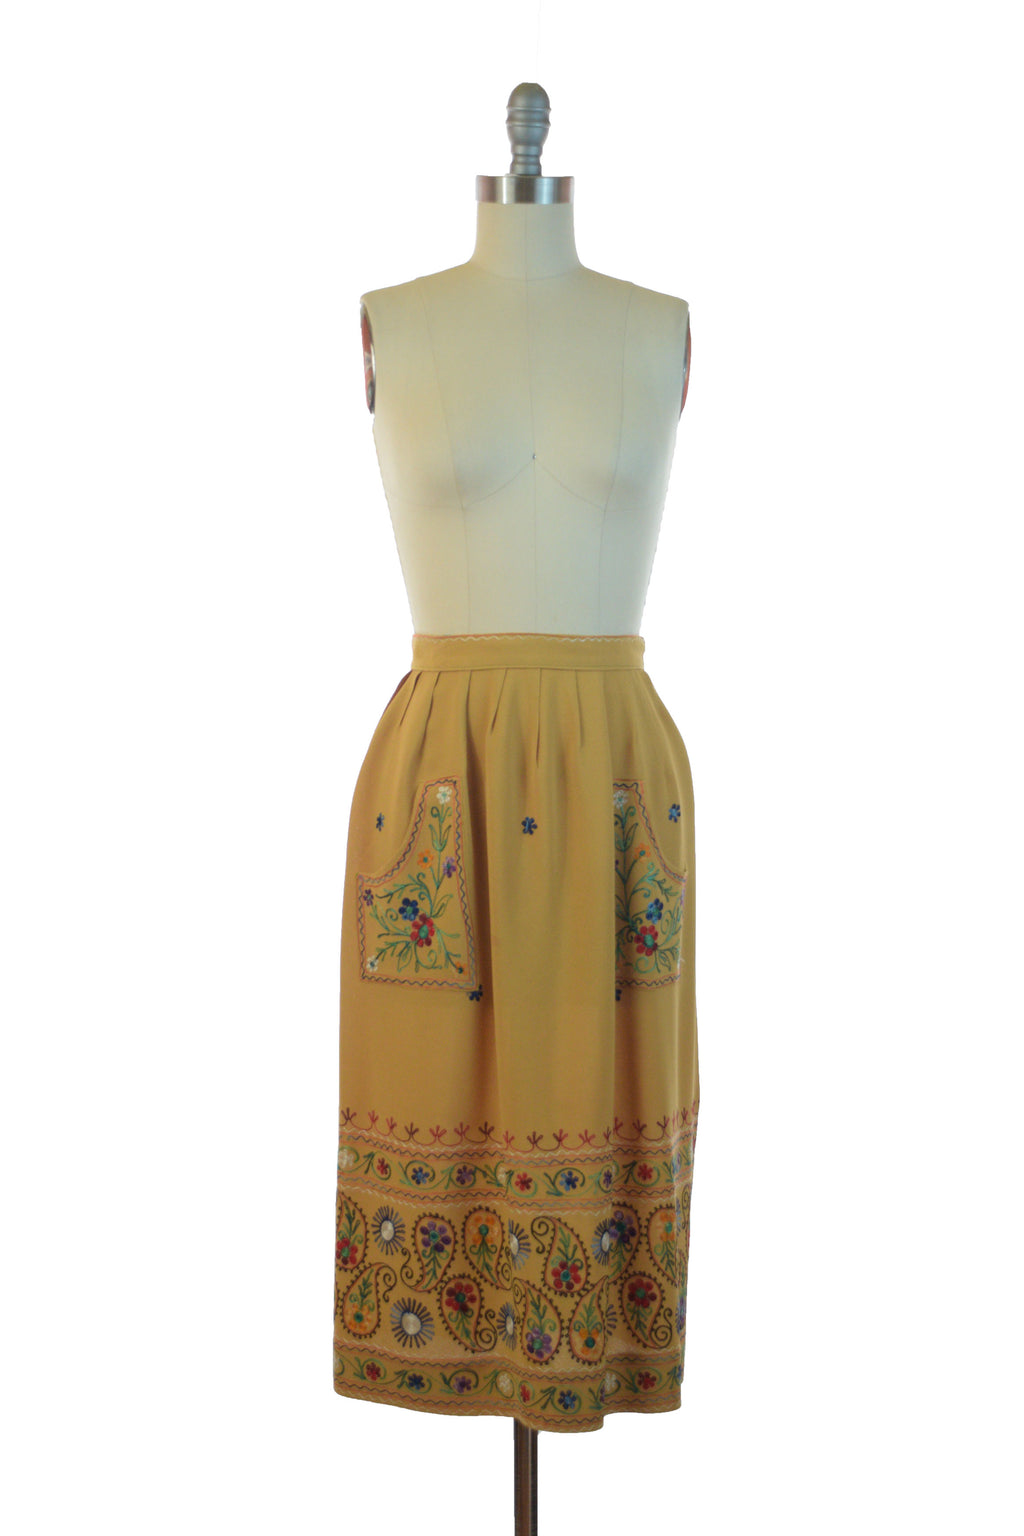 Layaway Deposit for Stunning 1940s Embroidered Skirt of Mustard Rayon with Folkwear Inspired Multi-Colored Embroidery